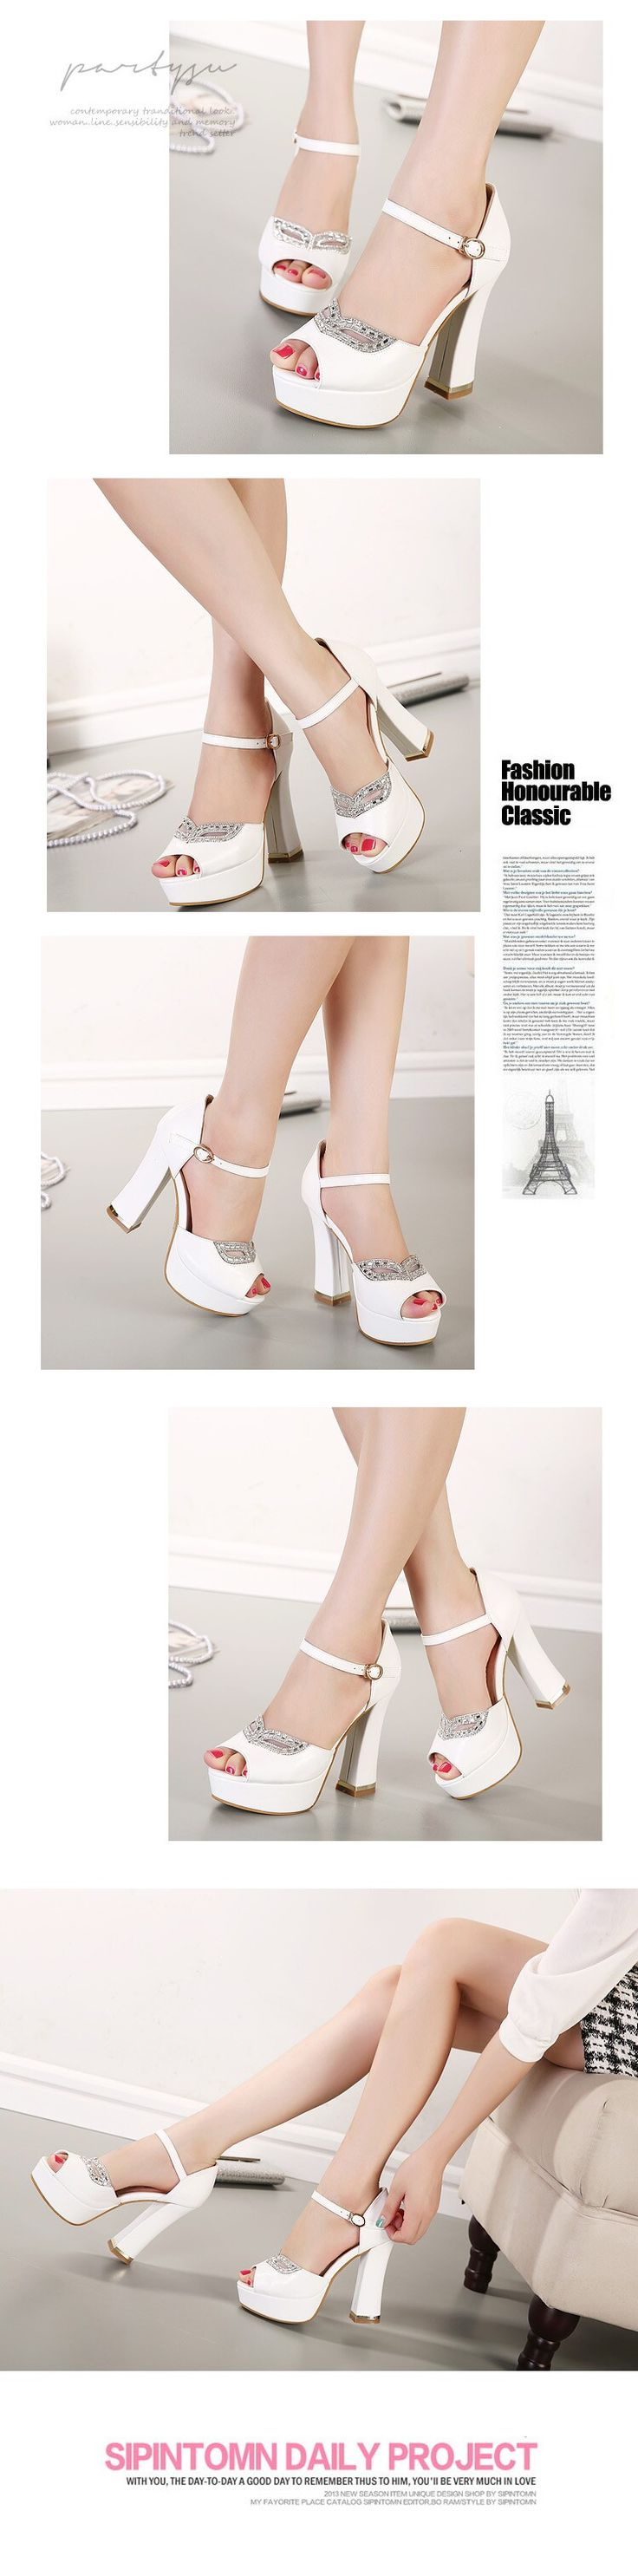 Free shipping, $32.22/Pair:buy wholesale rhinestone fox mask bridal heels white heel ivory shoes comfortable thick heel platform wedding shoes 12CM size 35 to 39 from DHgate.com,get worldwide delivery and buyer protection service.